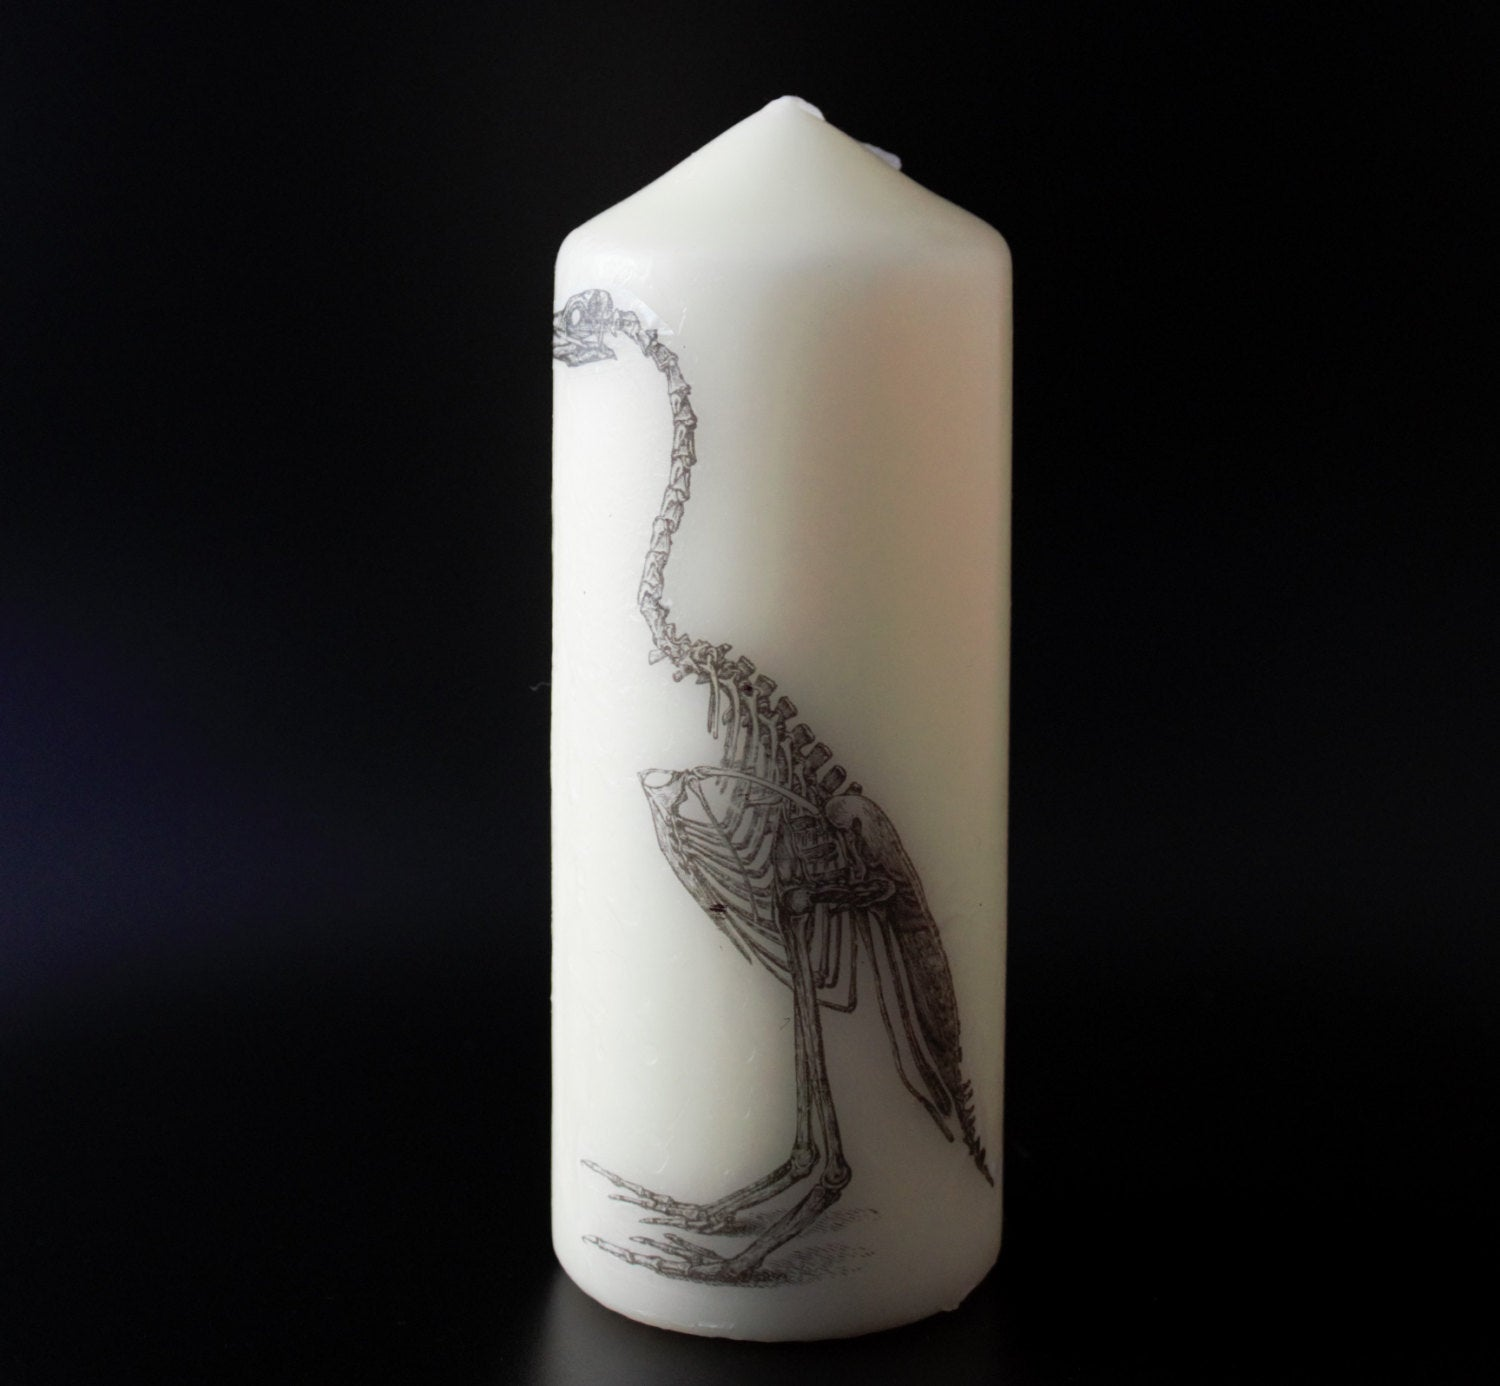 Anatomical Bird Skeleton  - Pillar Candle - Anatomical Decor - ByCandlelight27